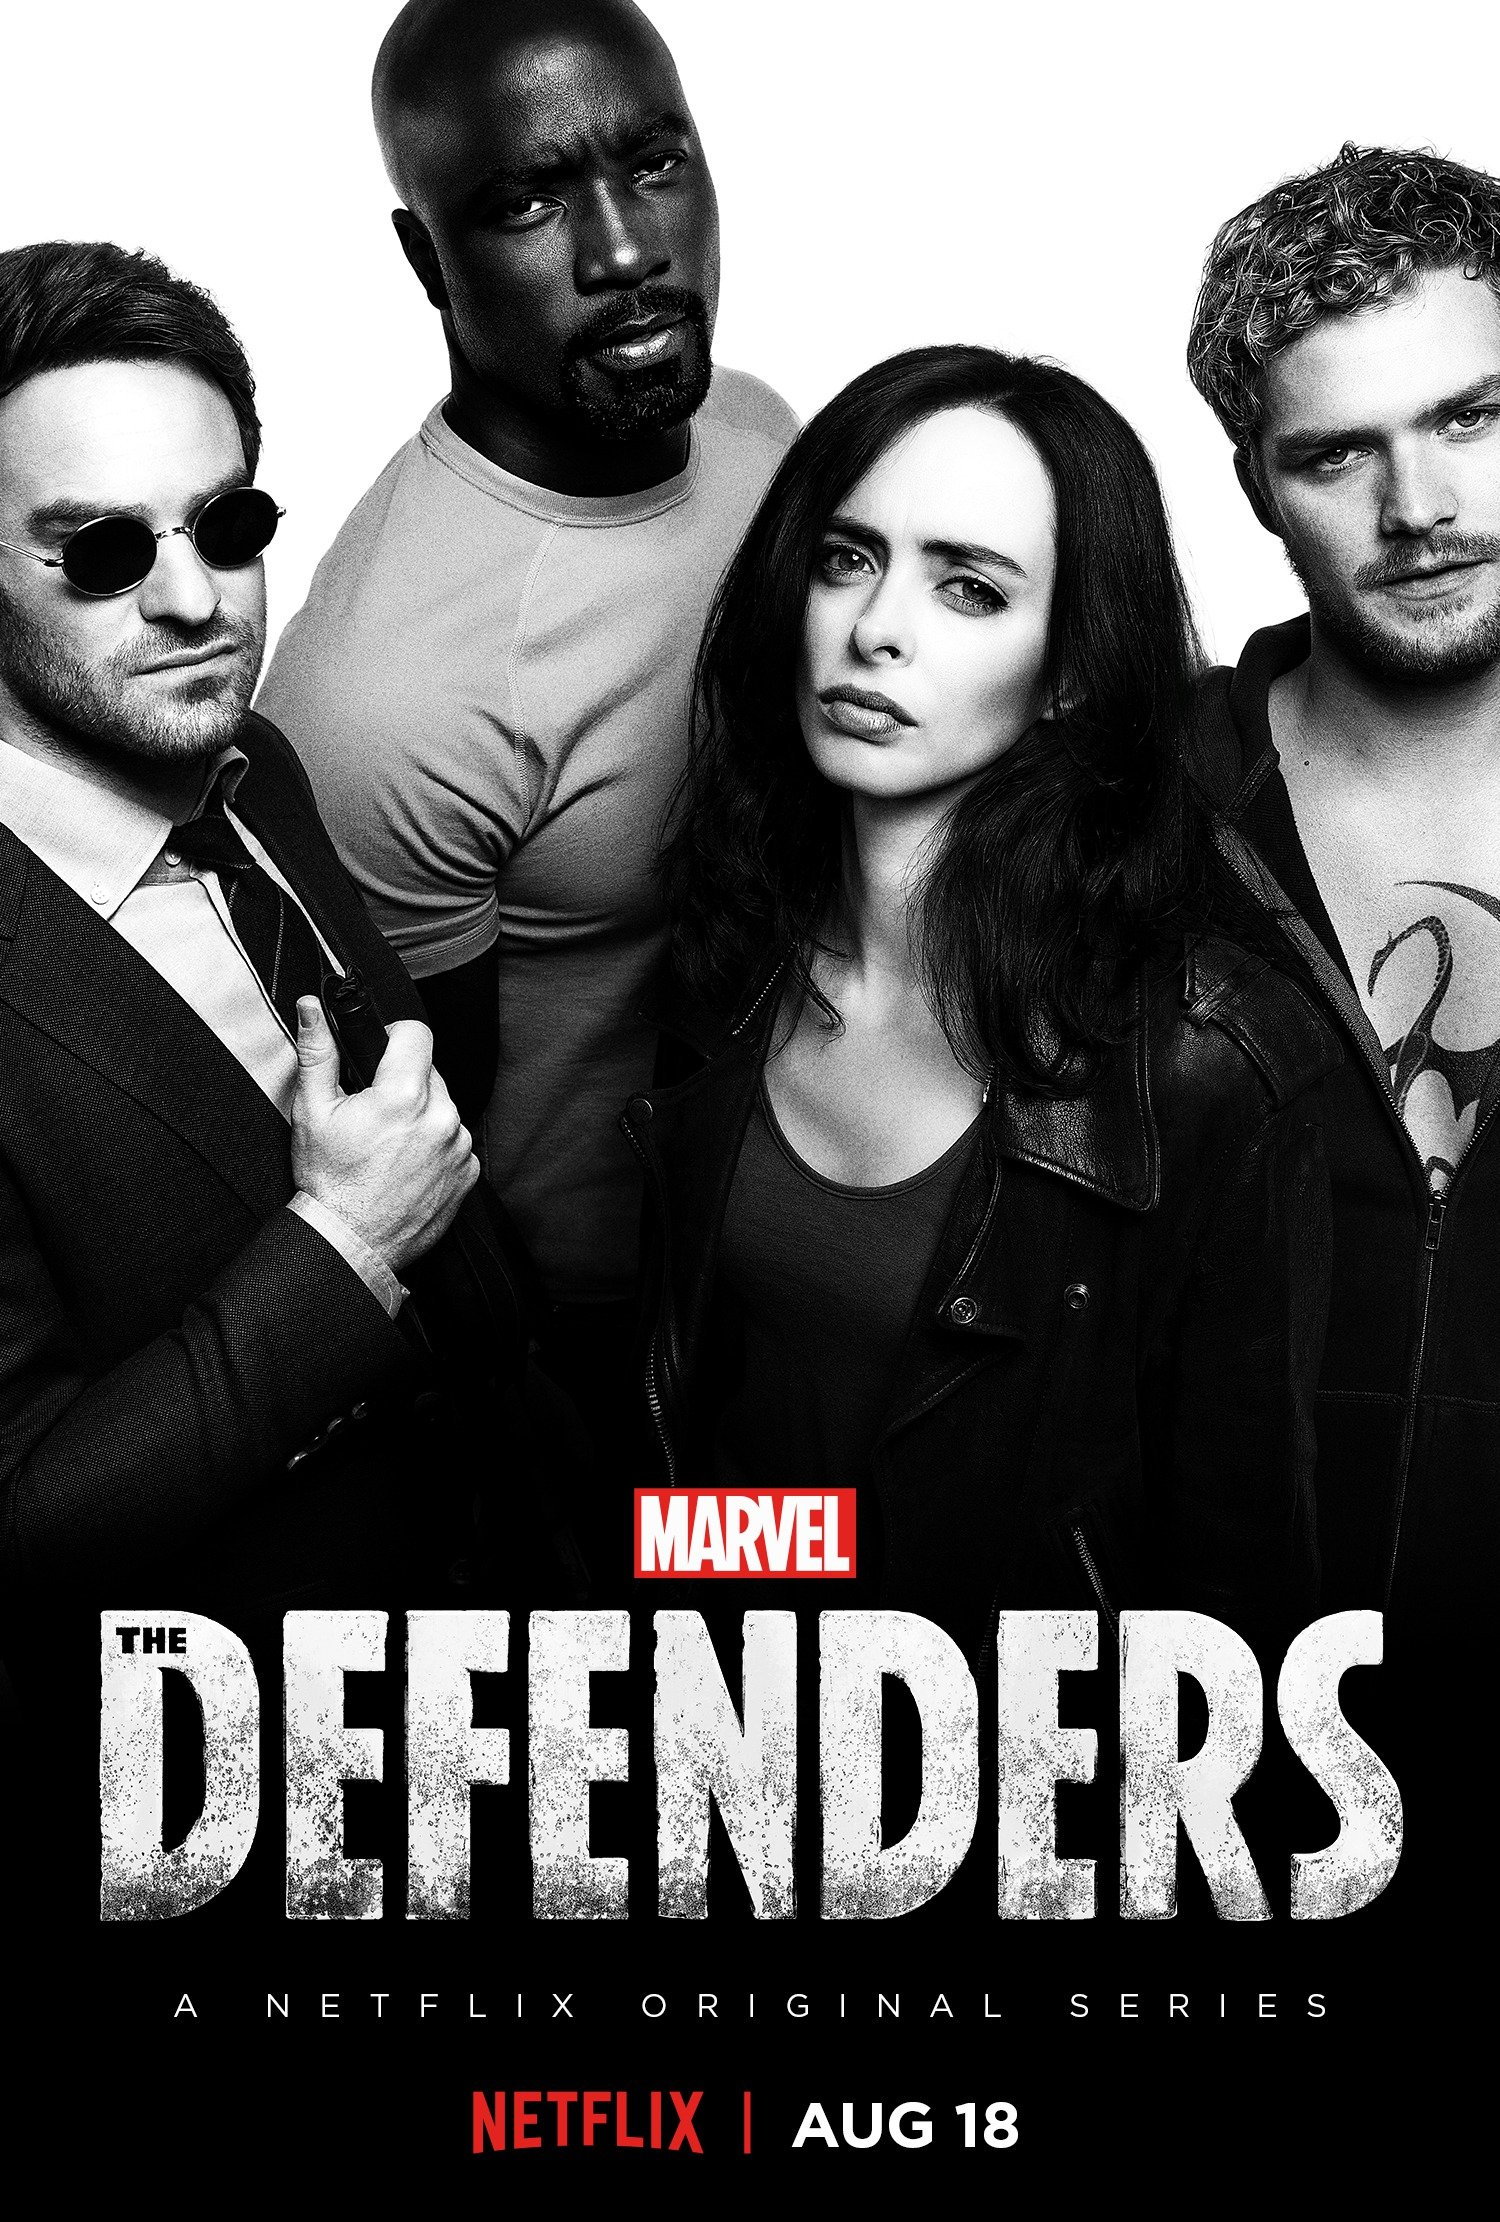 Poster de The Defenders avec Daredevil (Charlie Cox), Luke Cage (Mike Colter), Jessica Jones (Krysten Ritter) et Iron Fist (Finn Jones)